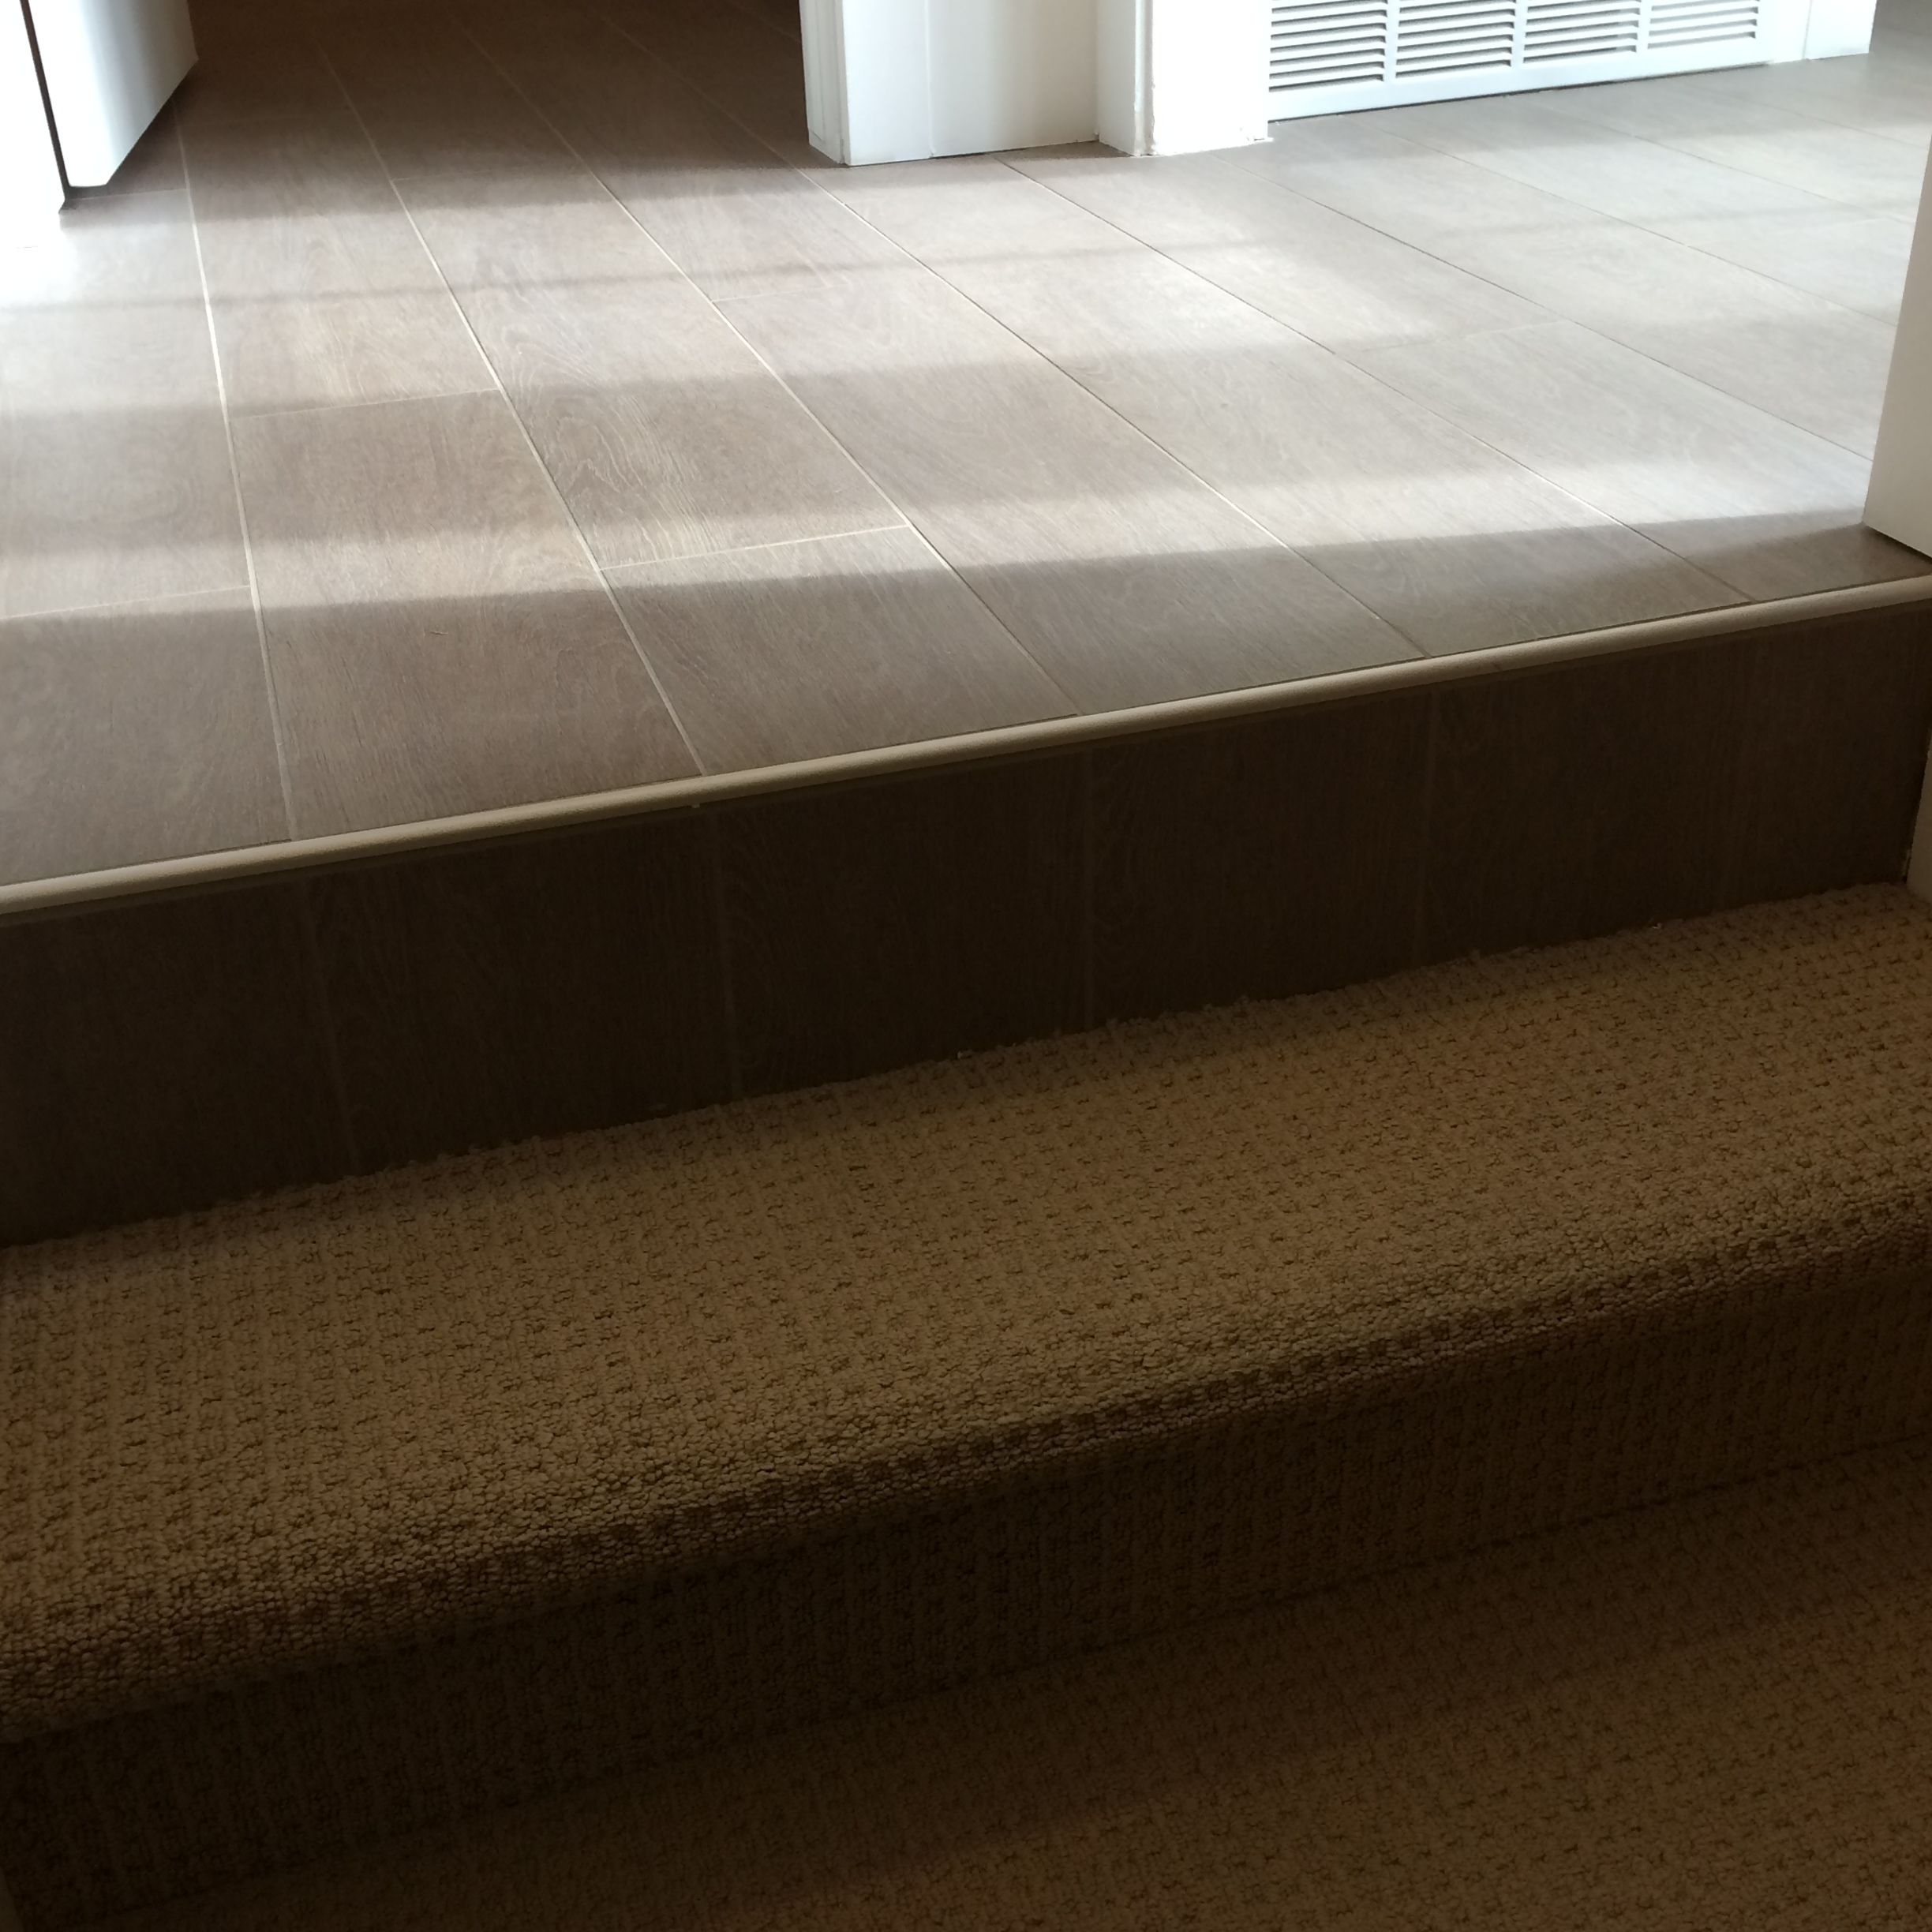 Wood Floor Tile With Metal End Cap At Top Of Staircase | Tile To Wood Stair Transition | Builder Grade | Upstairs | Residential | Laminate | Entryway